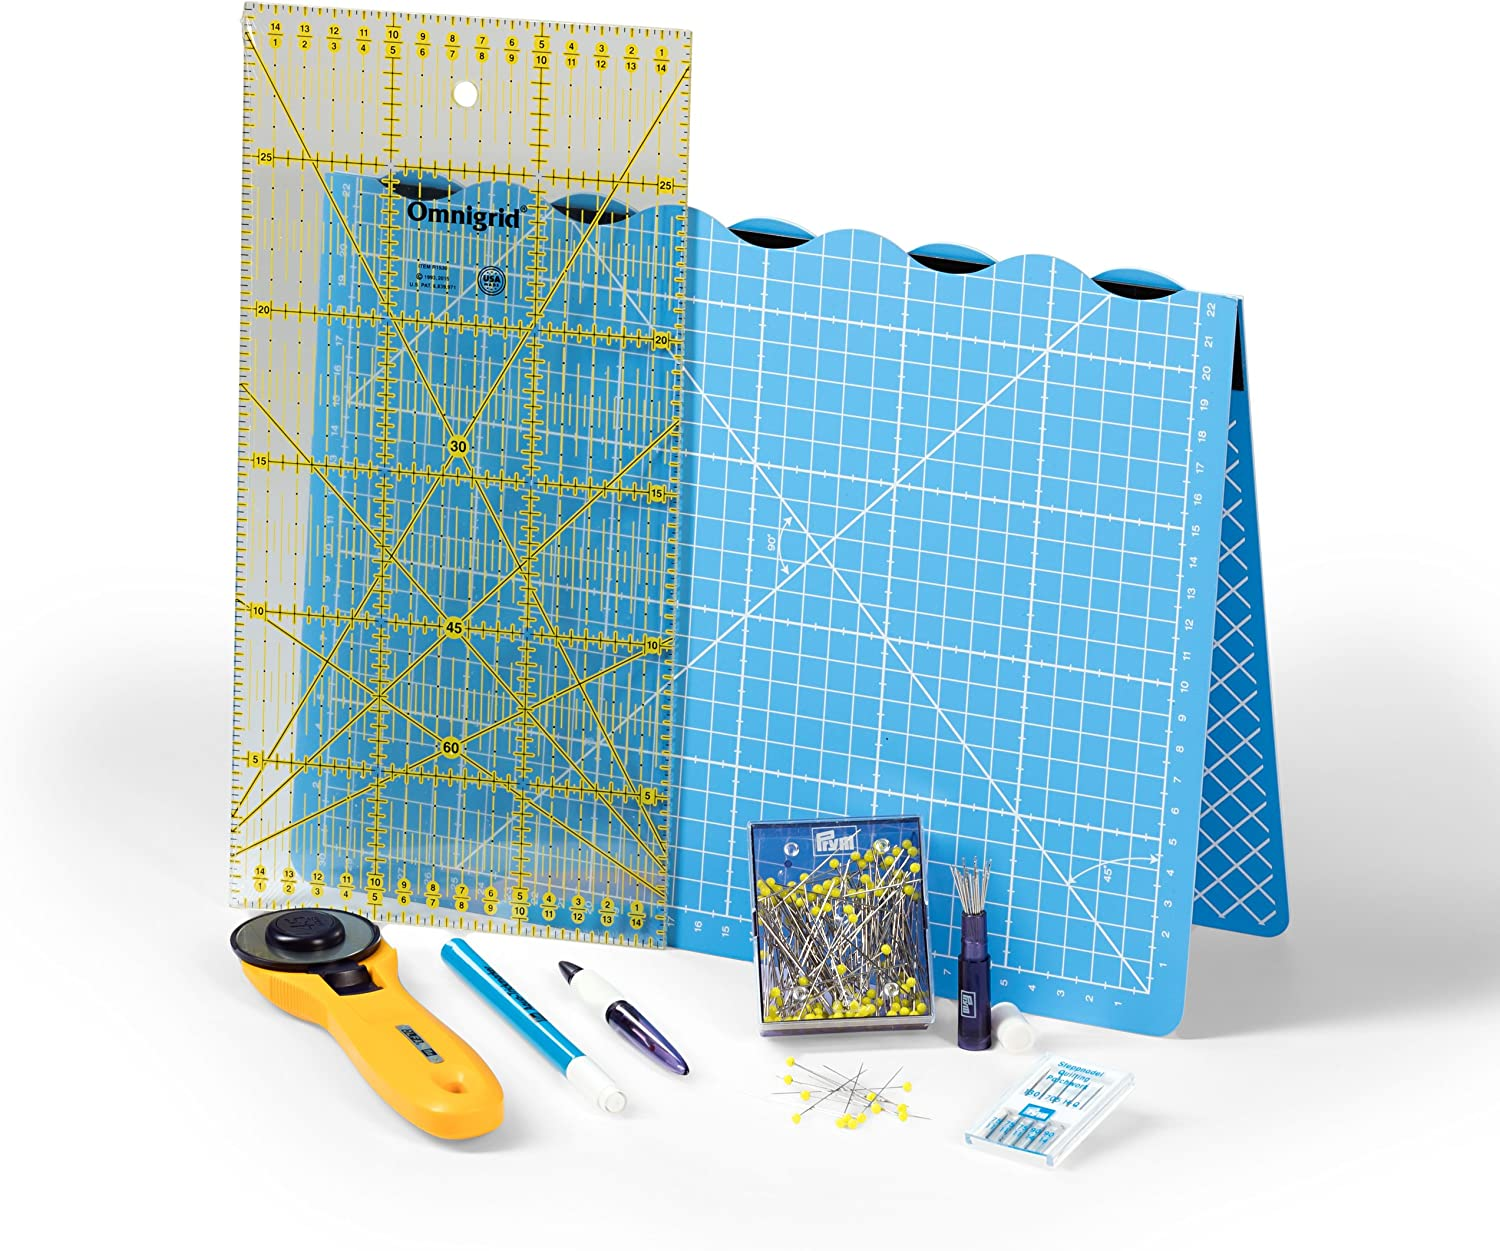 Prym Patchwork & Quilting Starter Set in cm Costura, Multicolor, DE